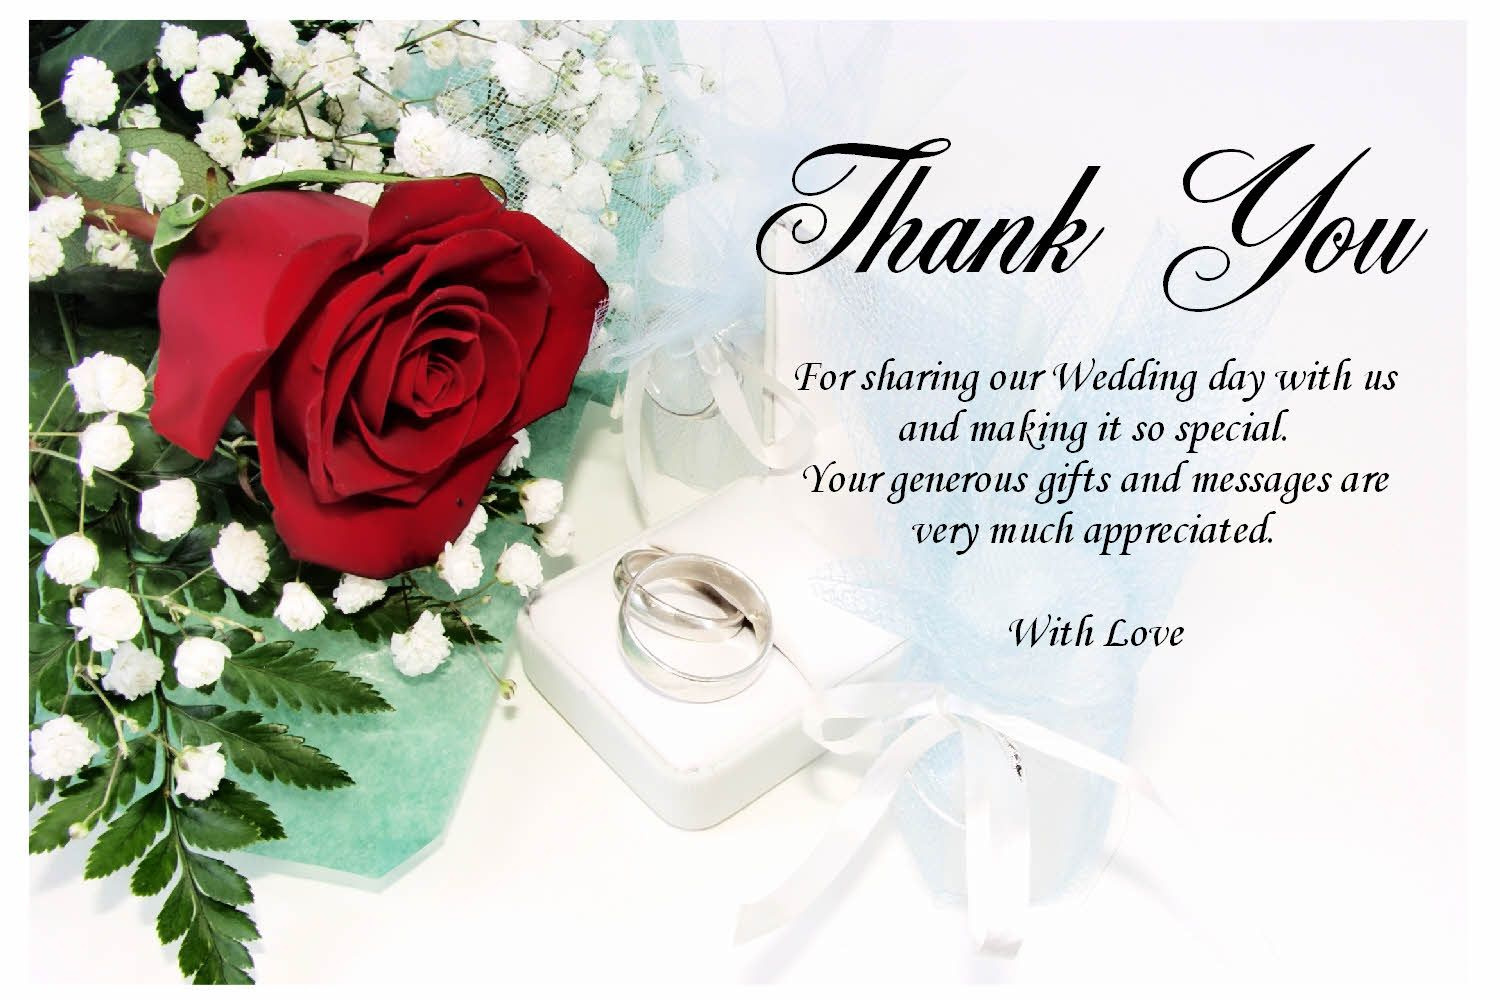 Related image | Thank You cards | Pinterest